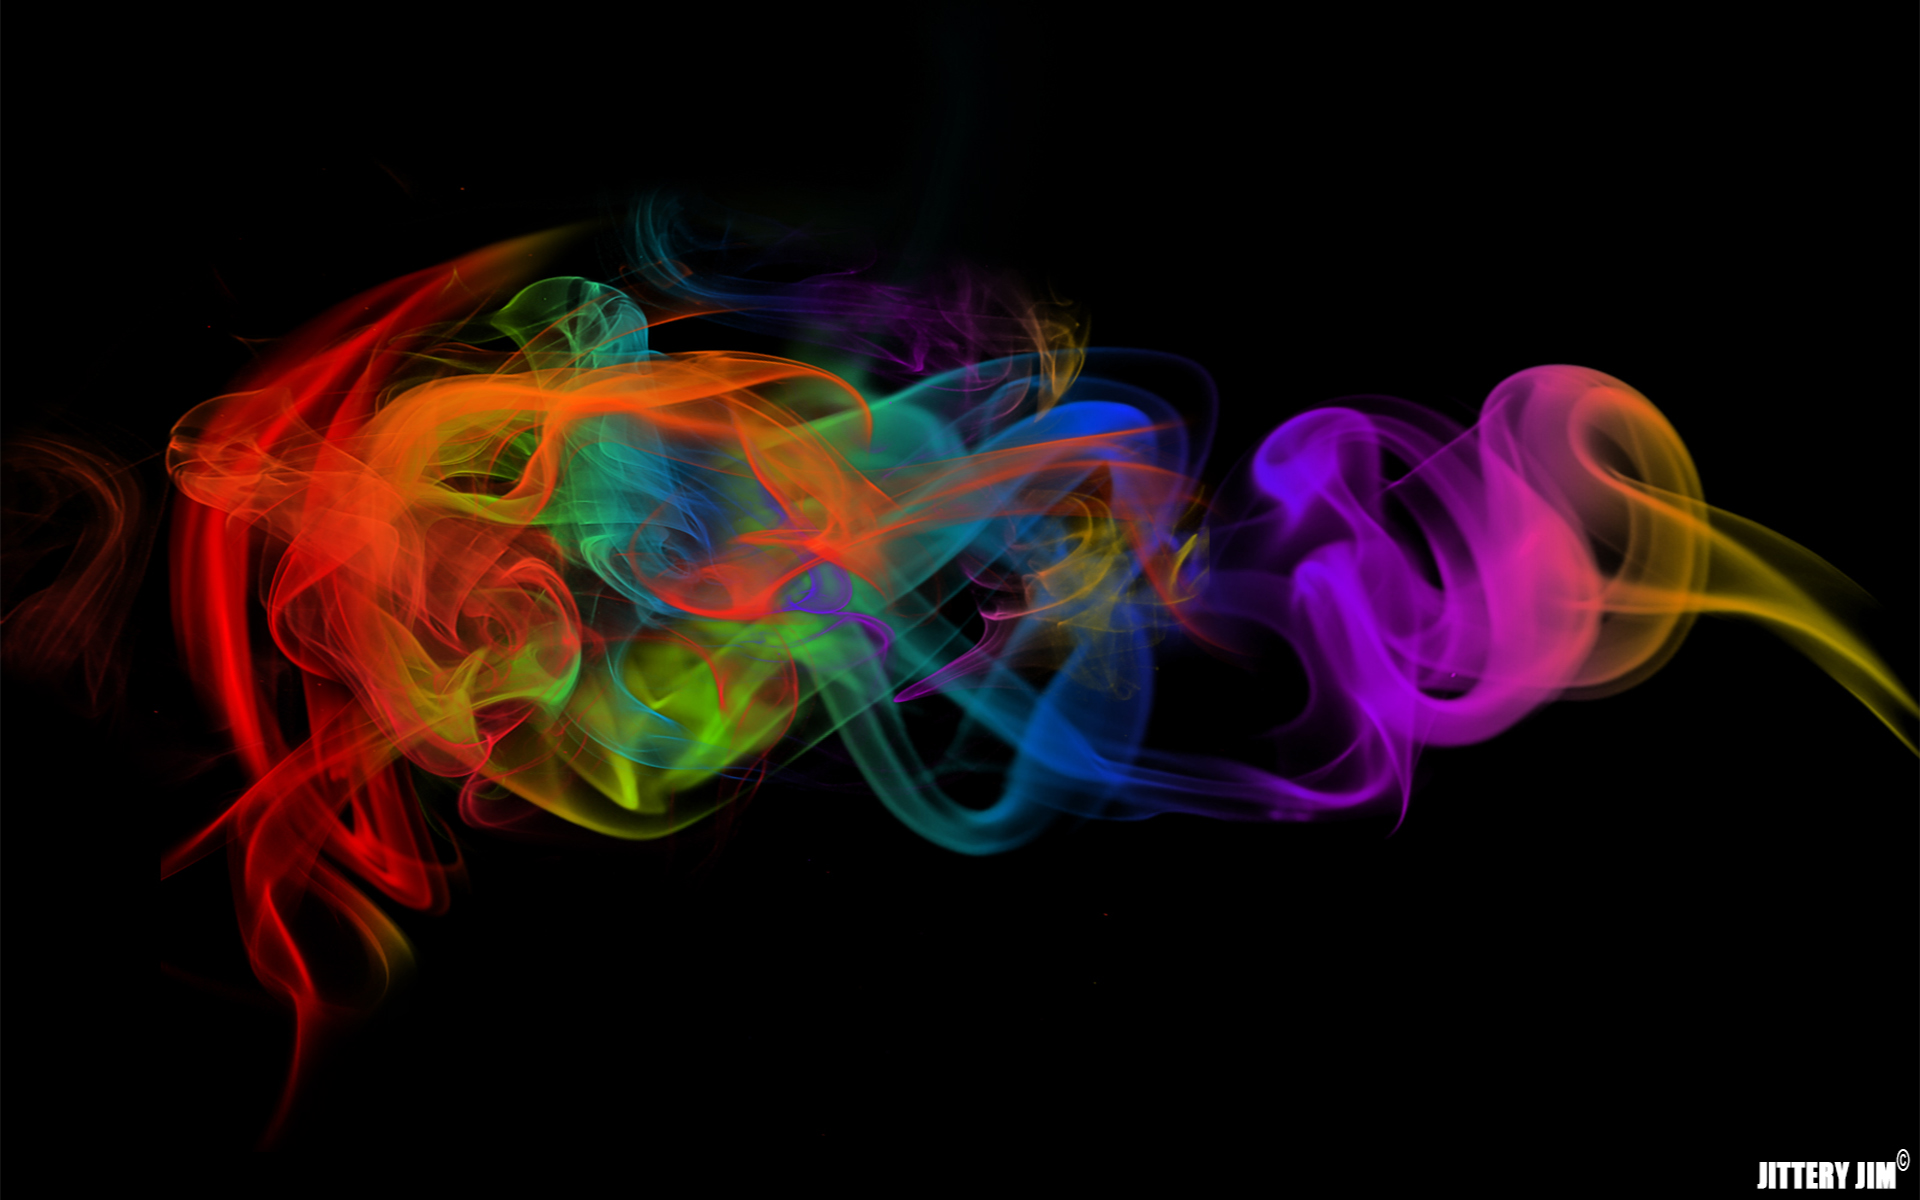 smoke abstract wallpapers wallpaper colorful 1920x1200 hdweweb4com 1920x1200